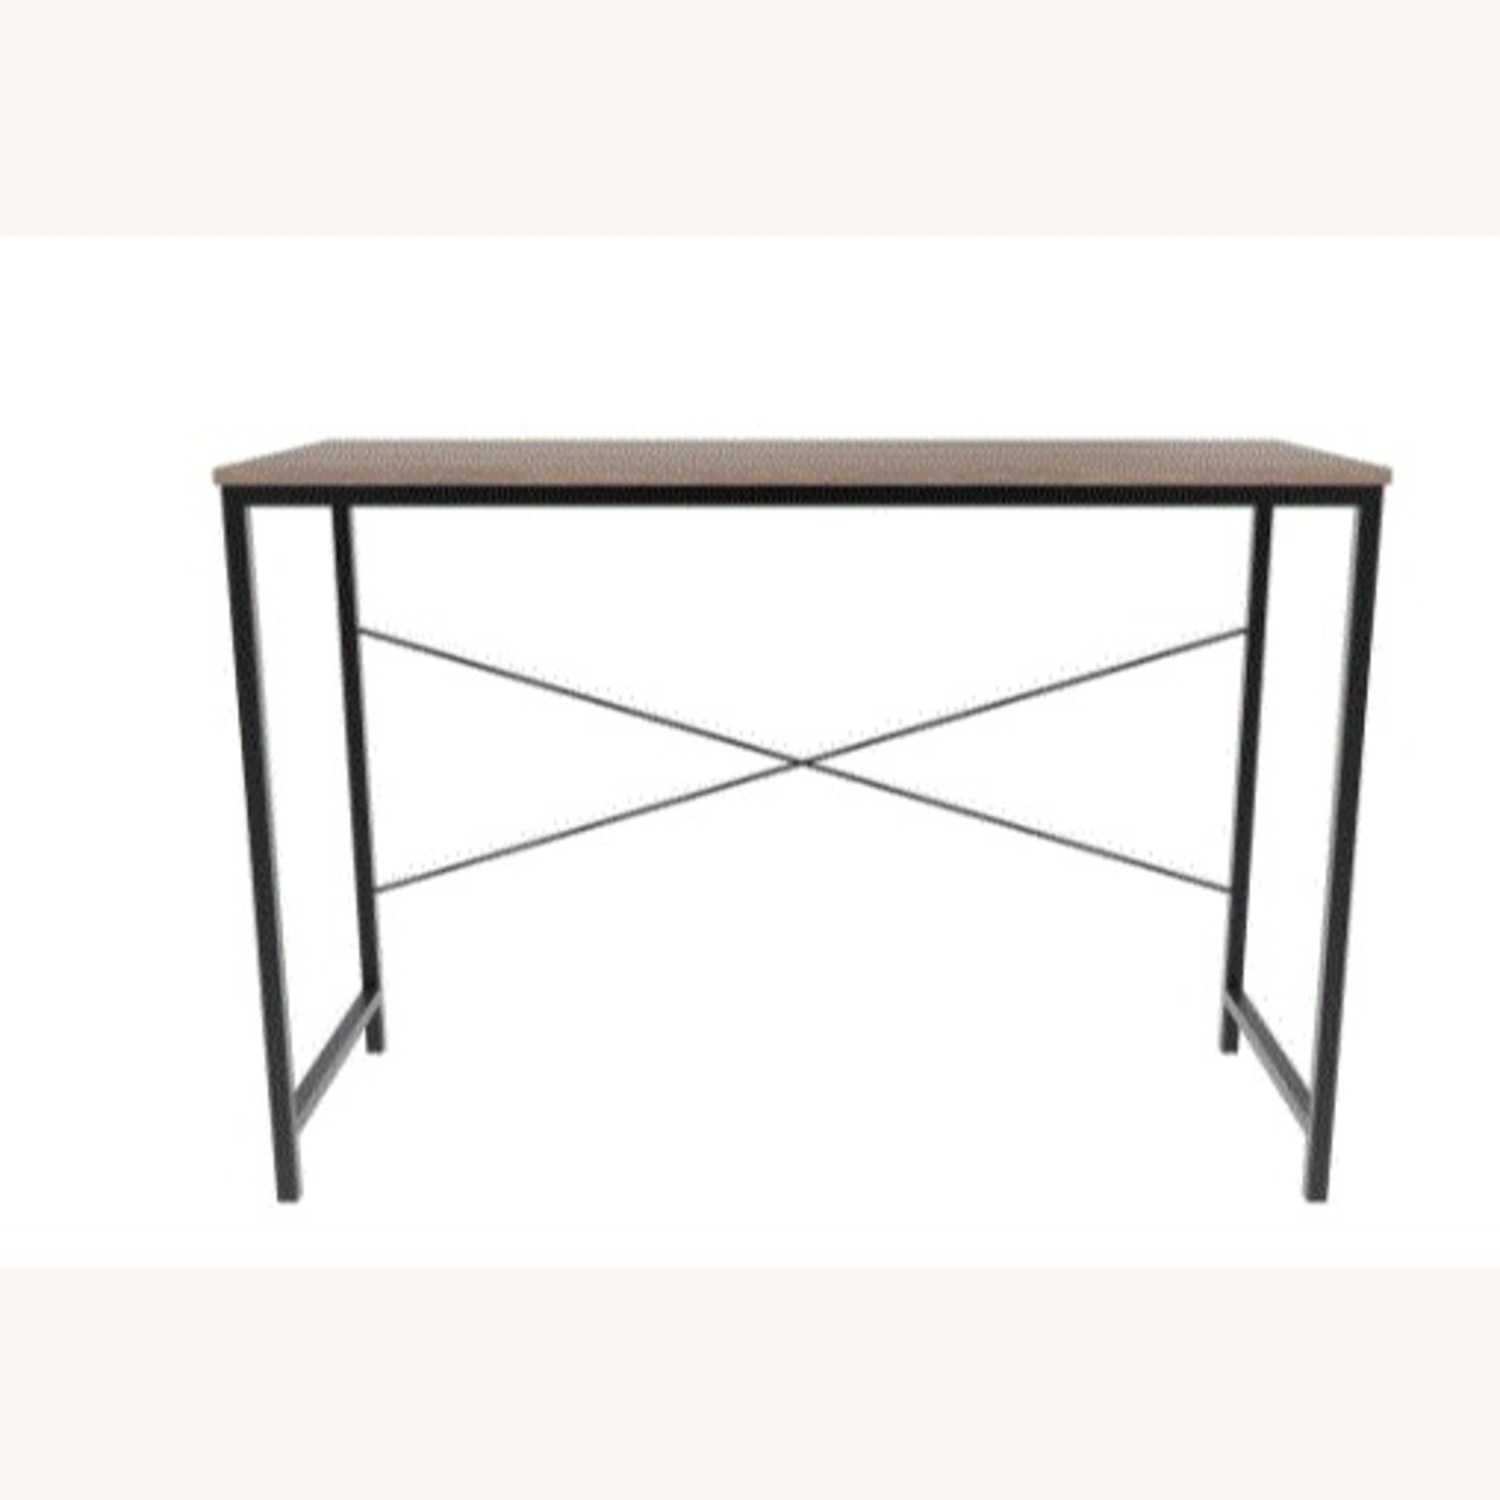 Rubbermaid Modern Console Table - image-2